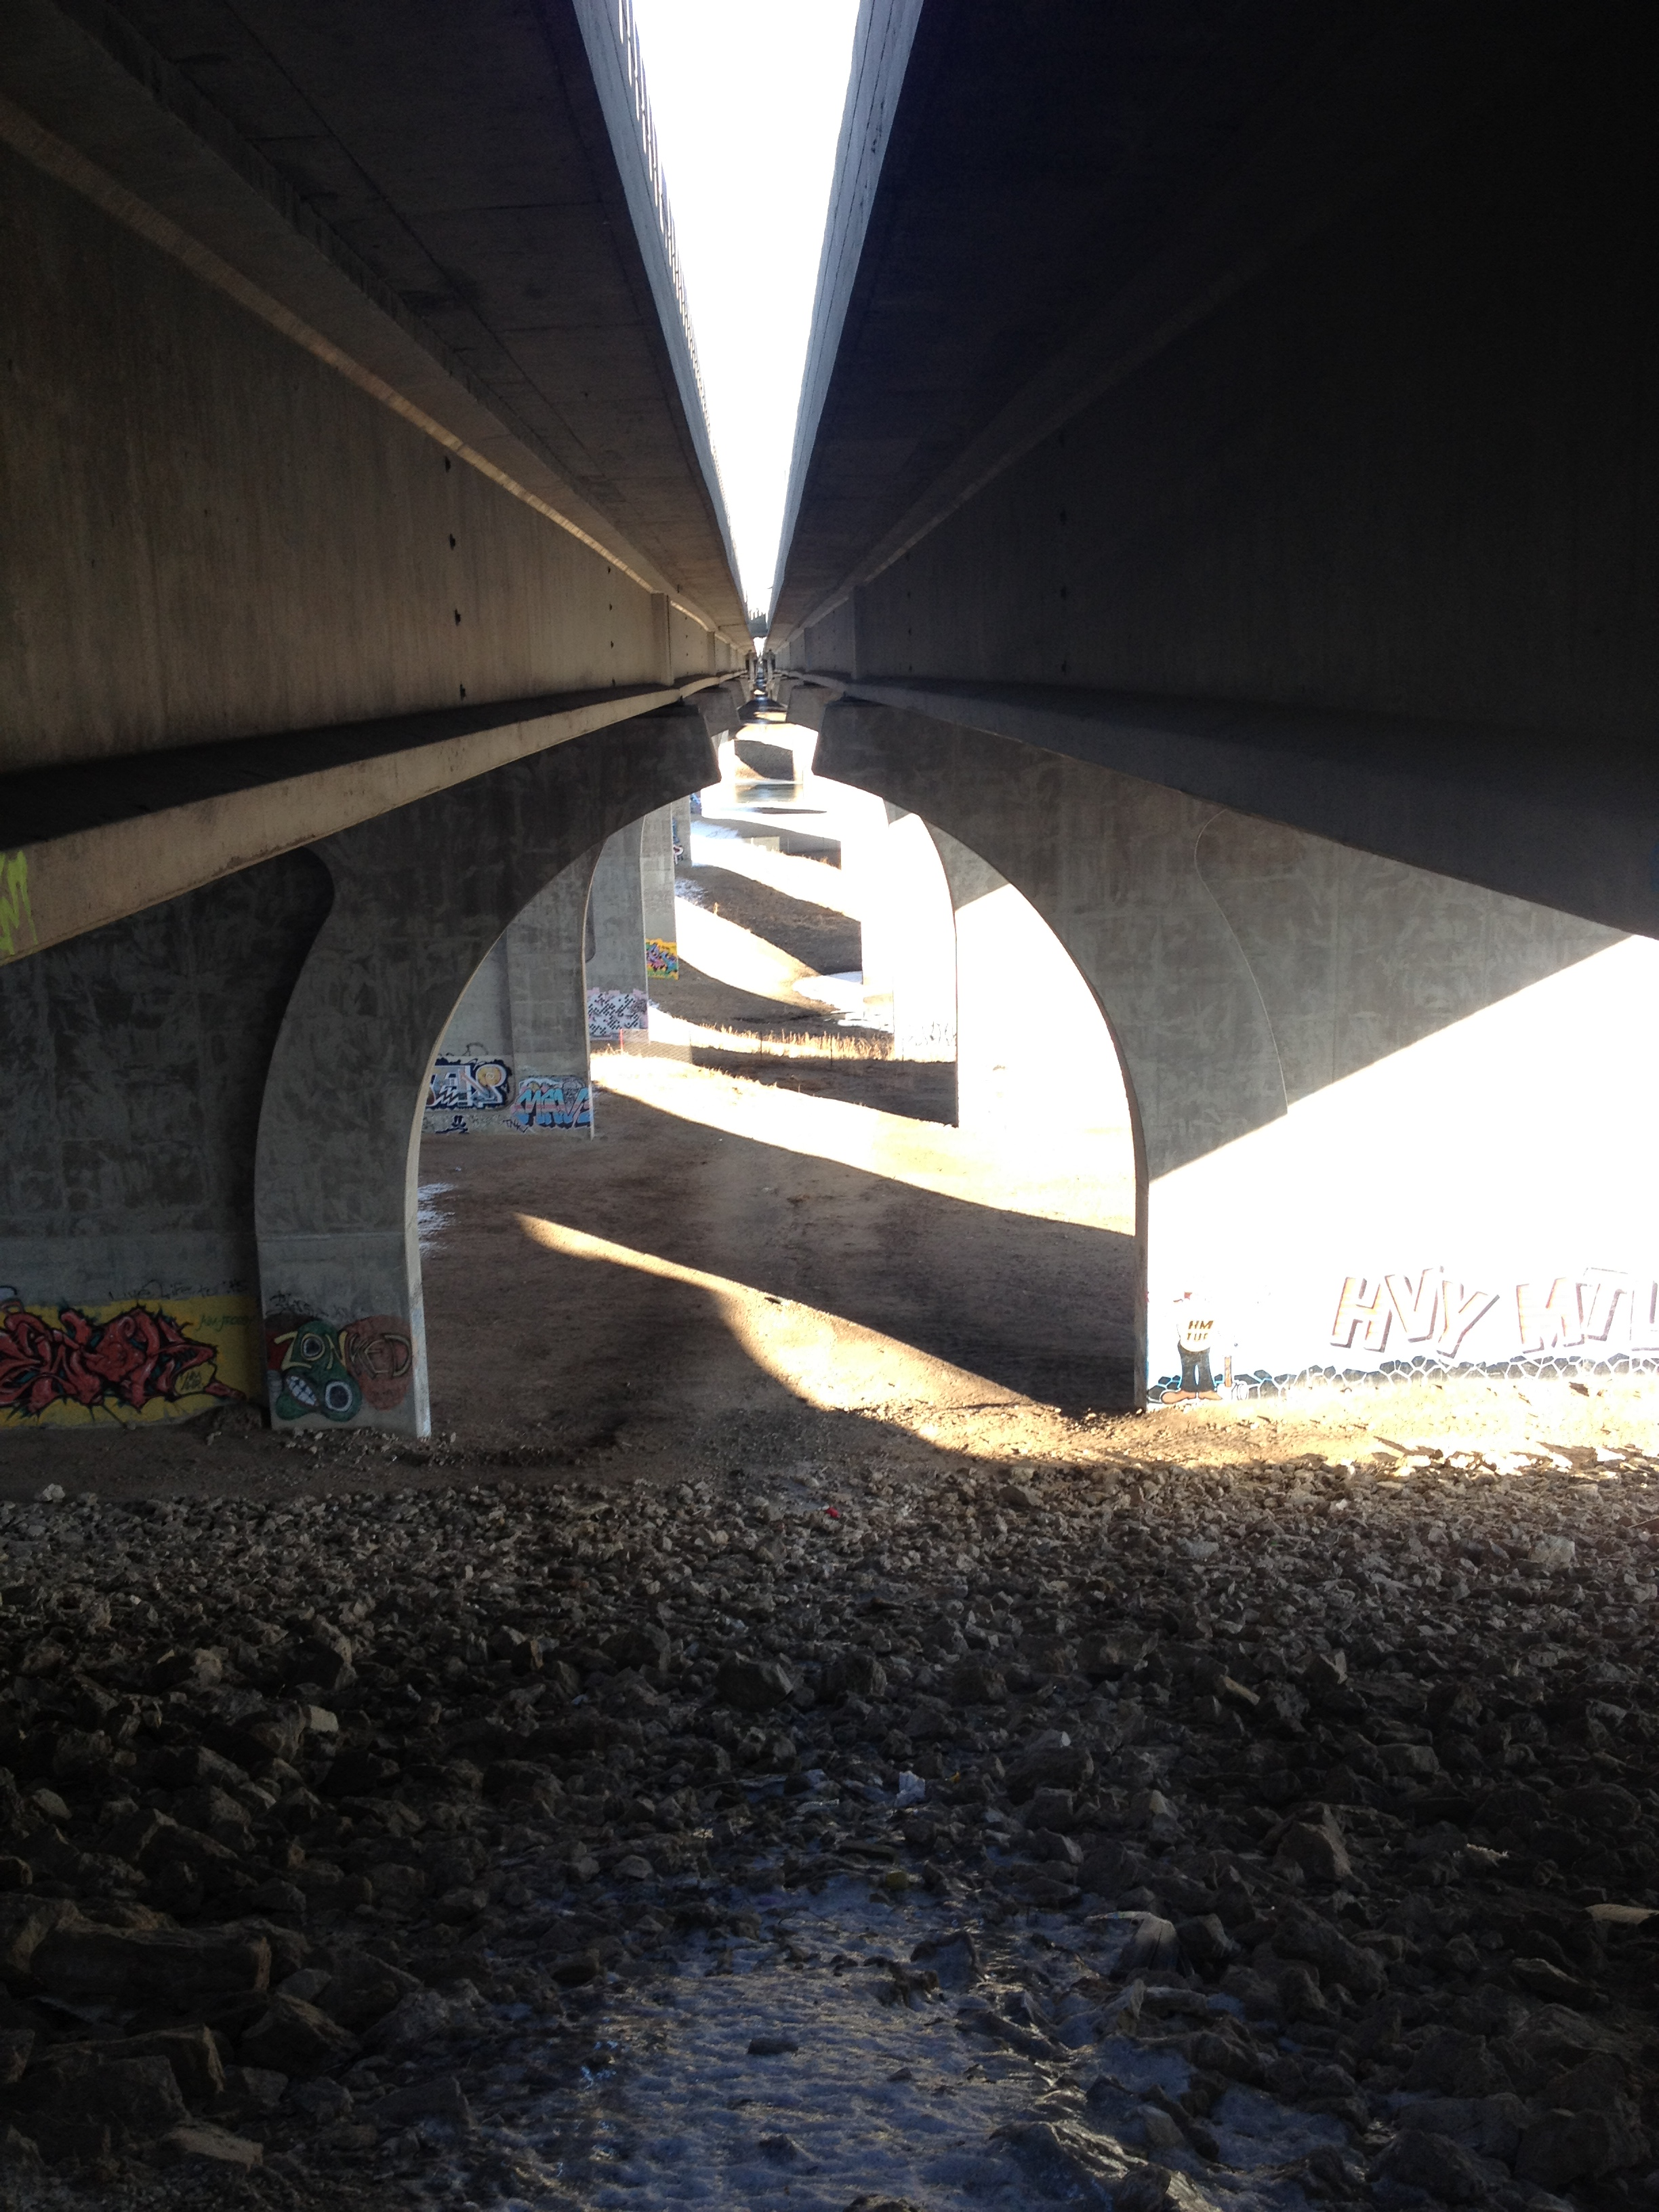 A downward view from between the decks of 2 concrete bridge overpasses that are facing straight away